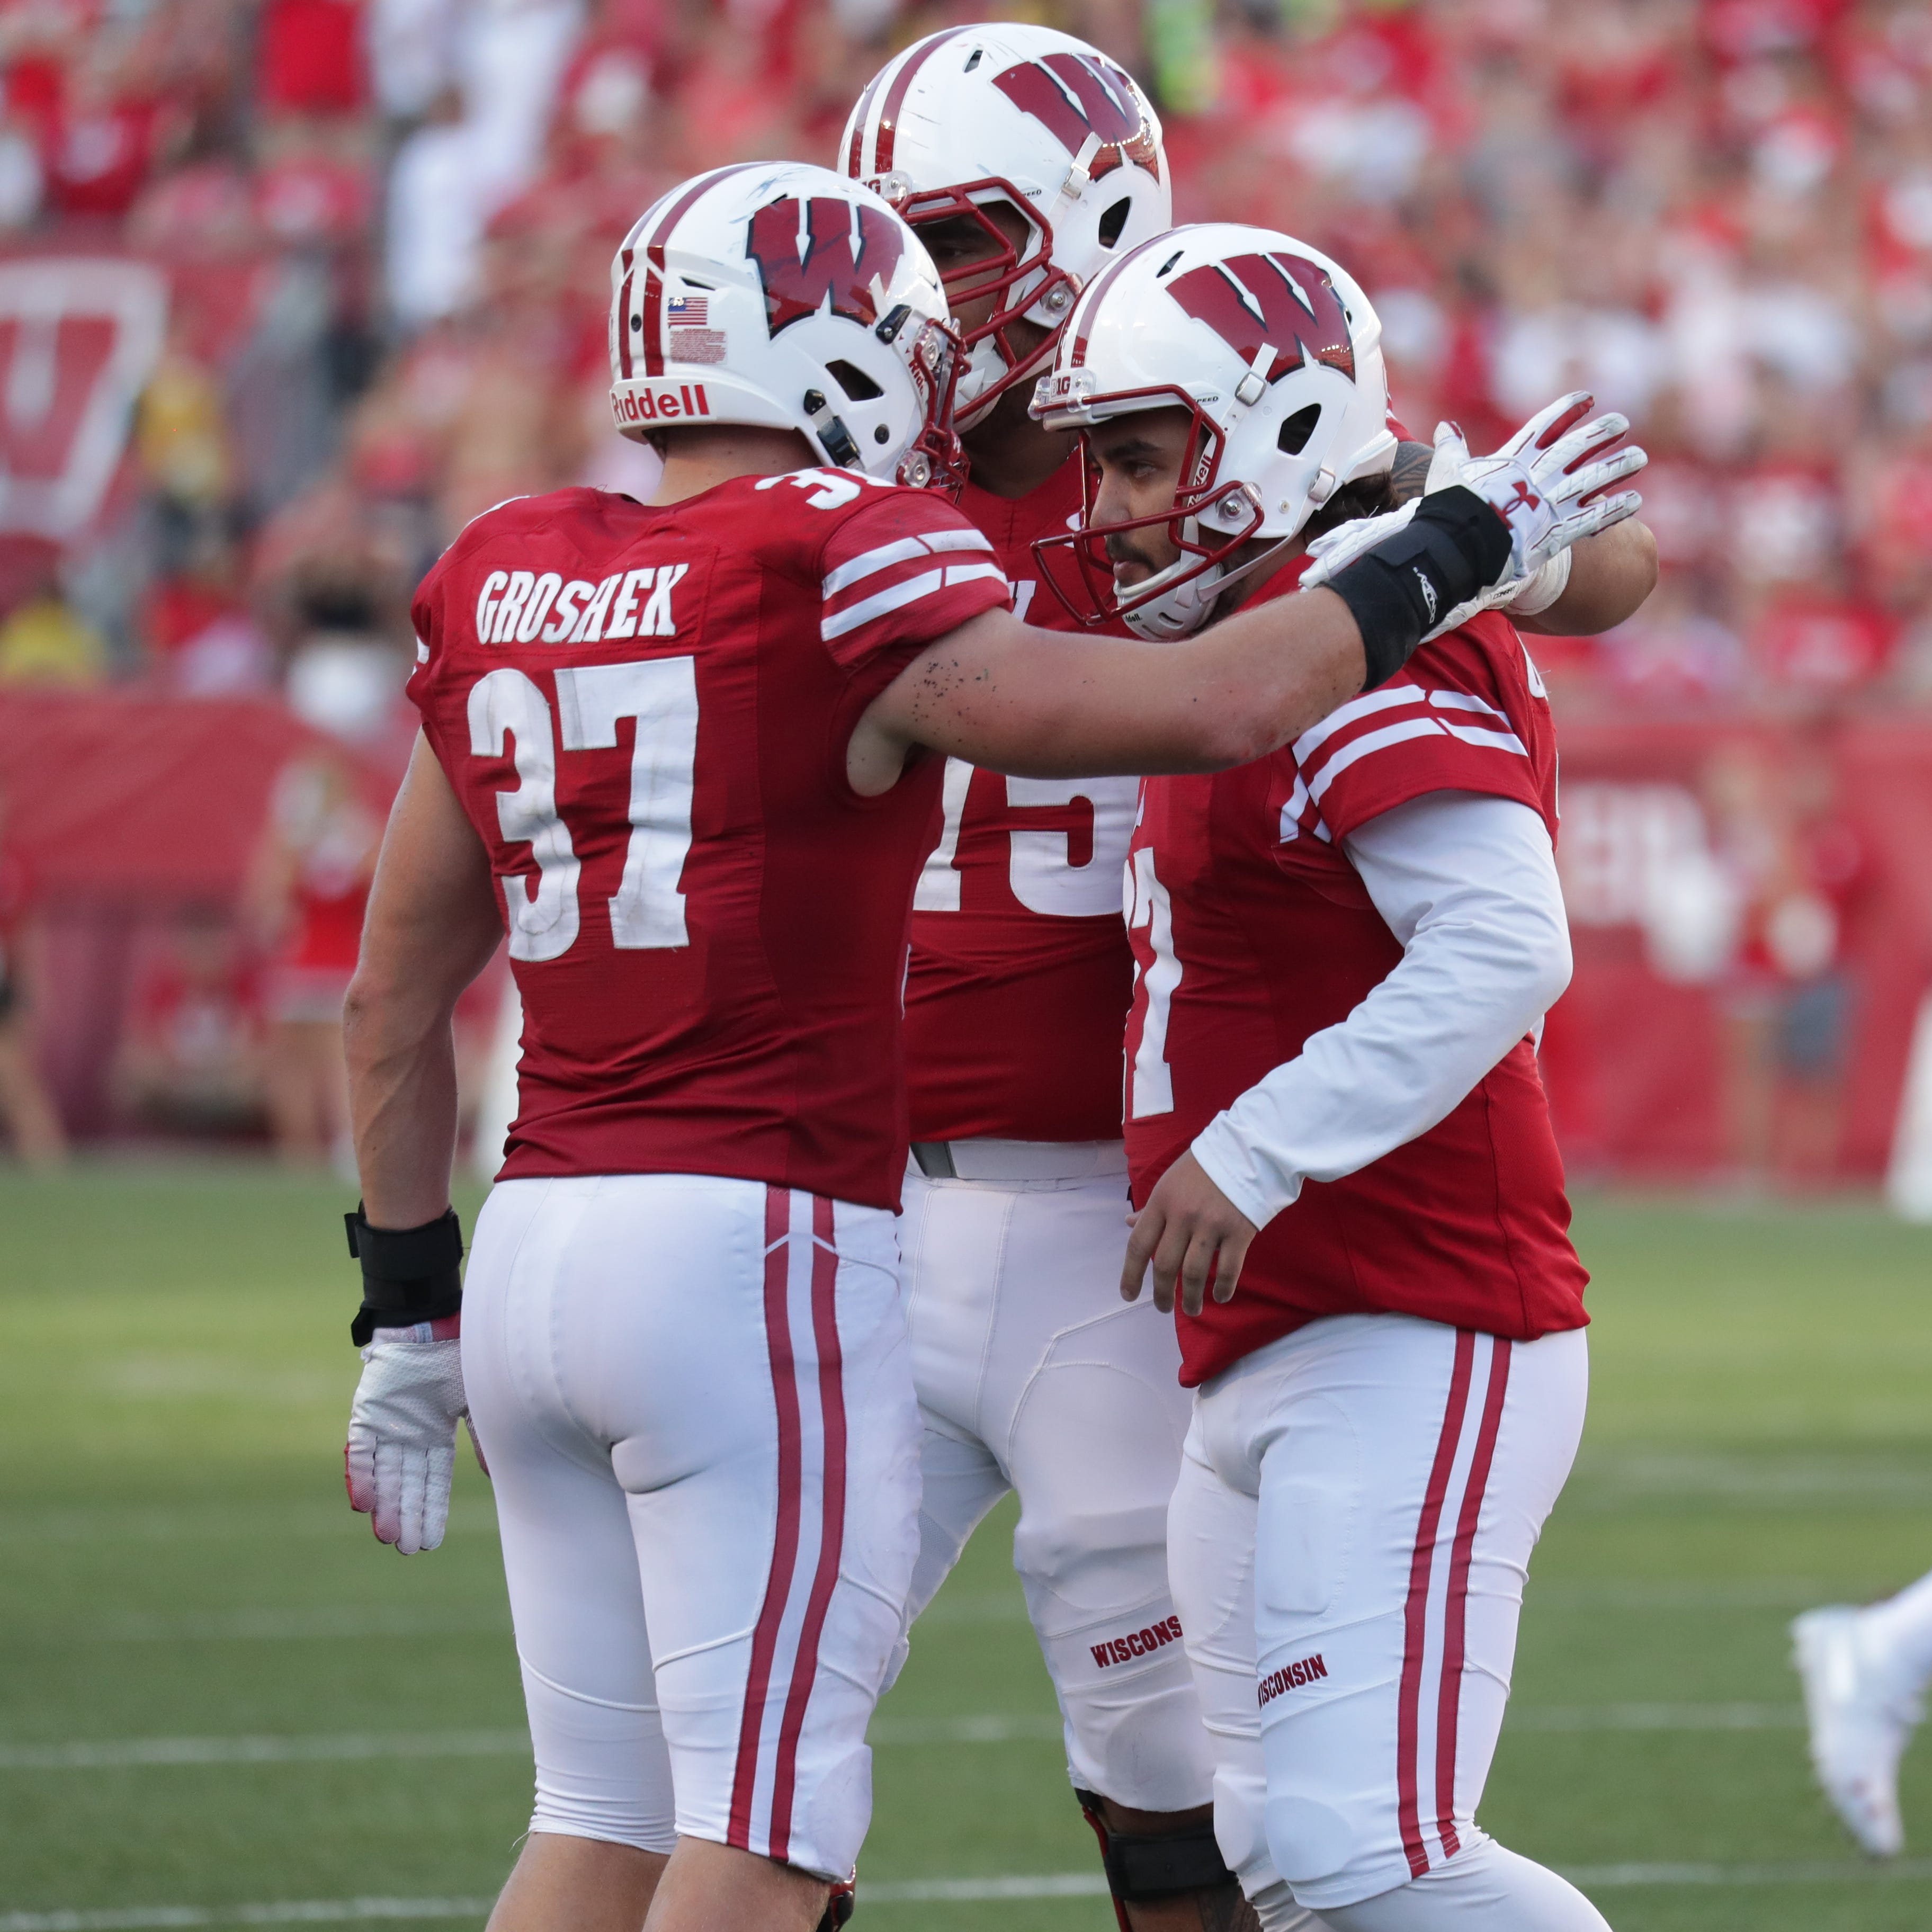 UW notes: Injuries to Andrew Van Ginkel and Zander Neuville add to the Badgers' pain